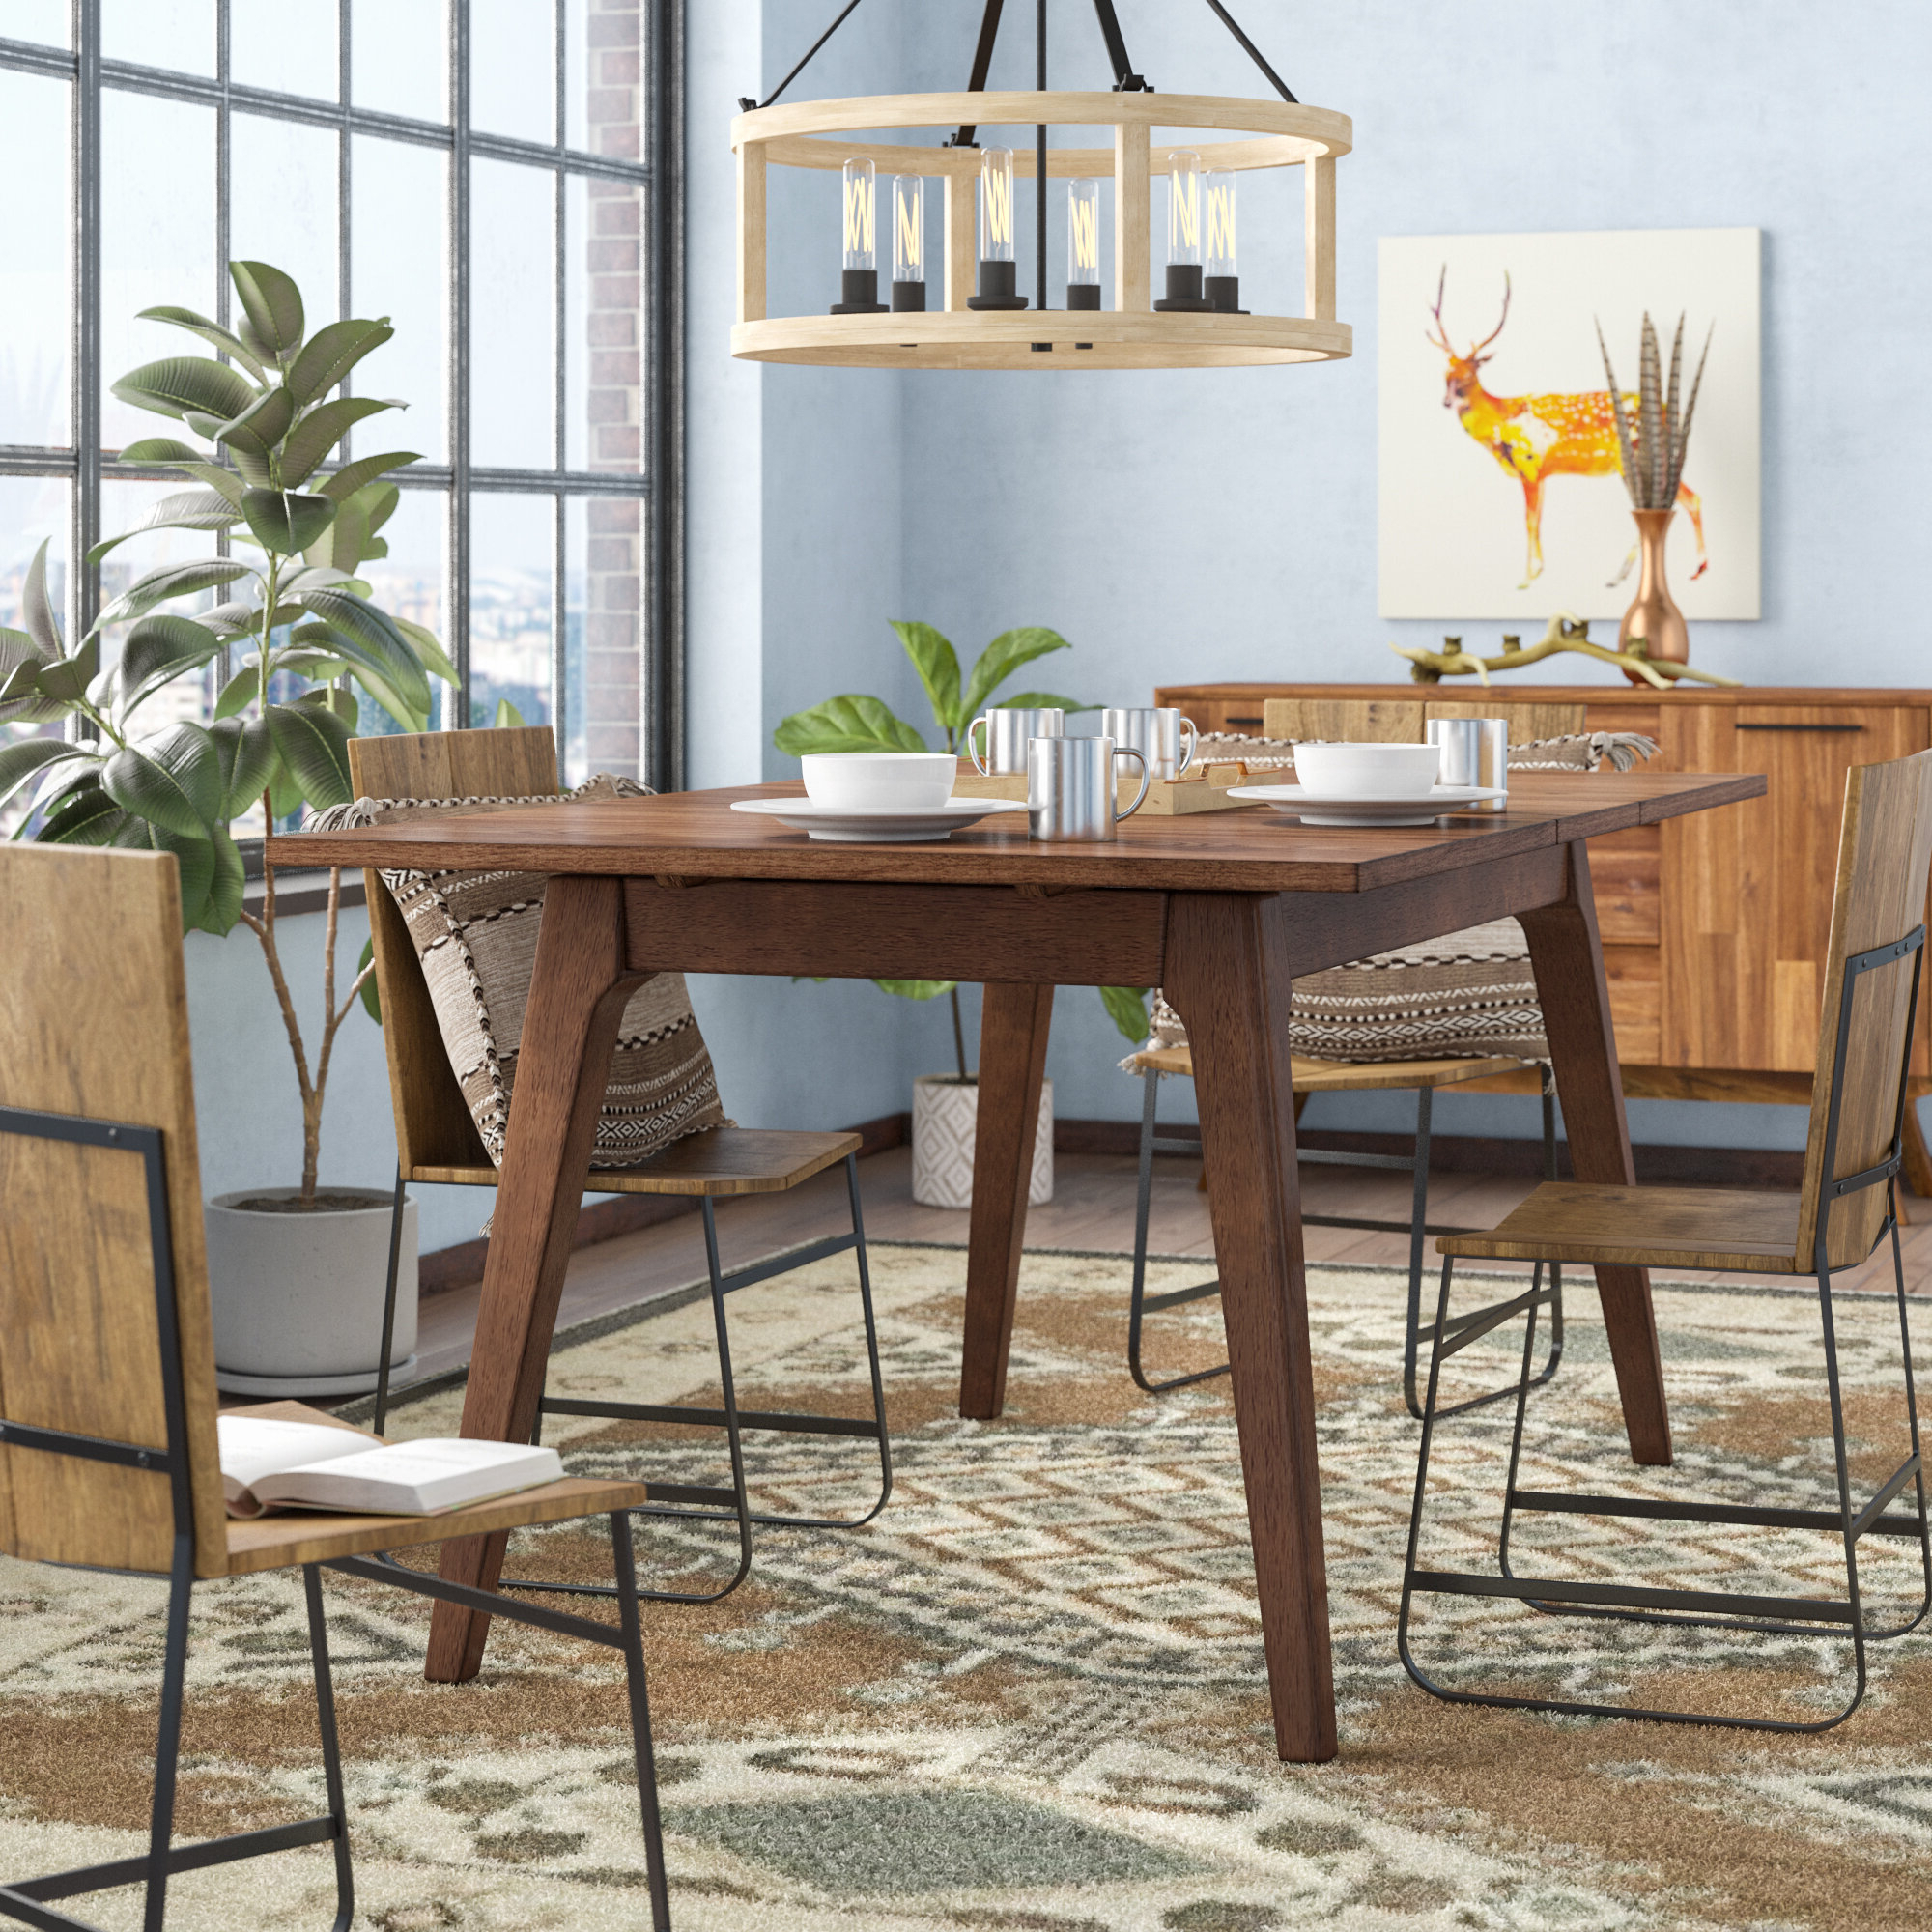 Transitional 4 Seating Drop Leaf Casual Dining Tables Intended For Trendy Union Rustic Lehto Drop Leaf Dining Table & Reviews (View 24 of 25)